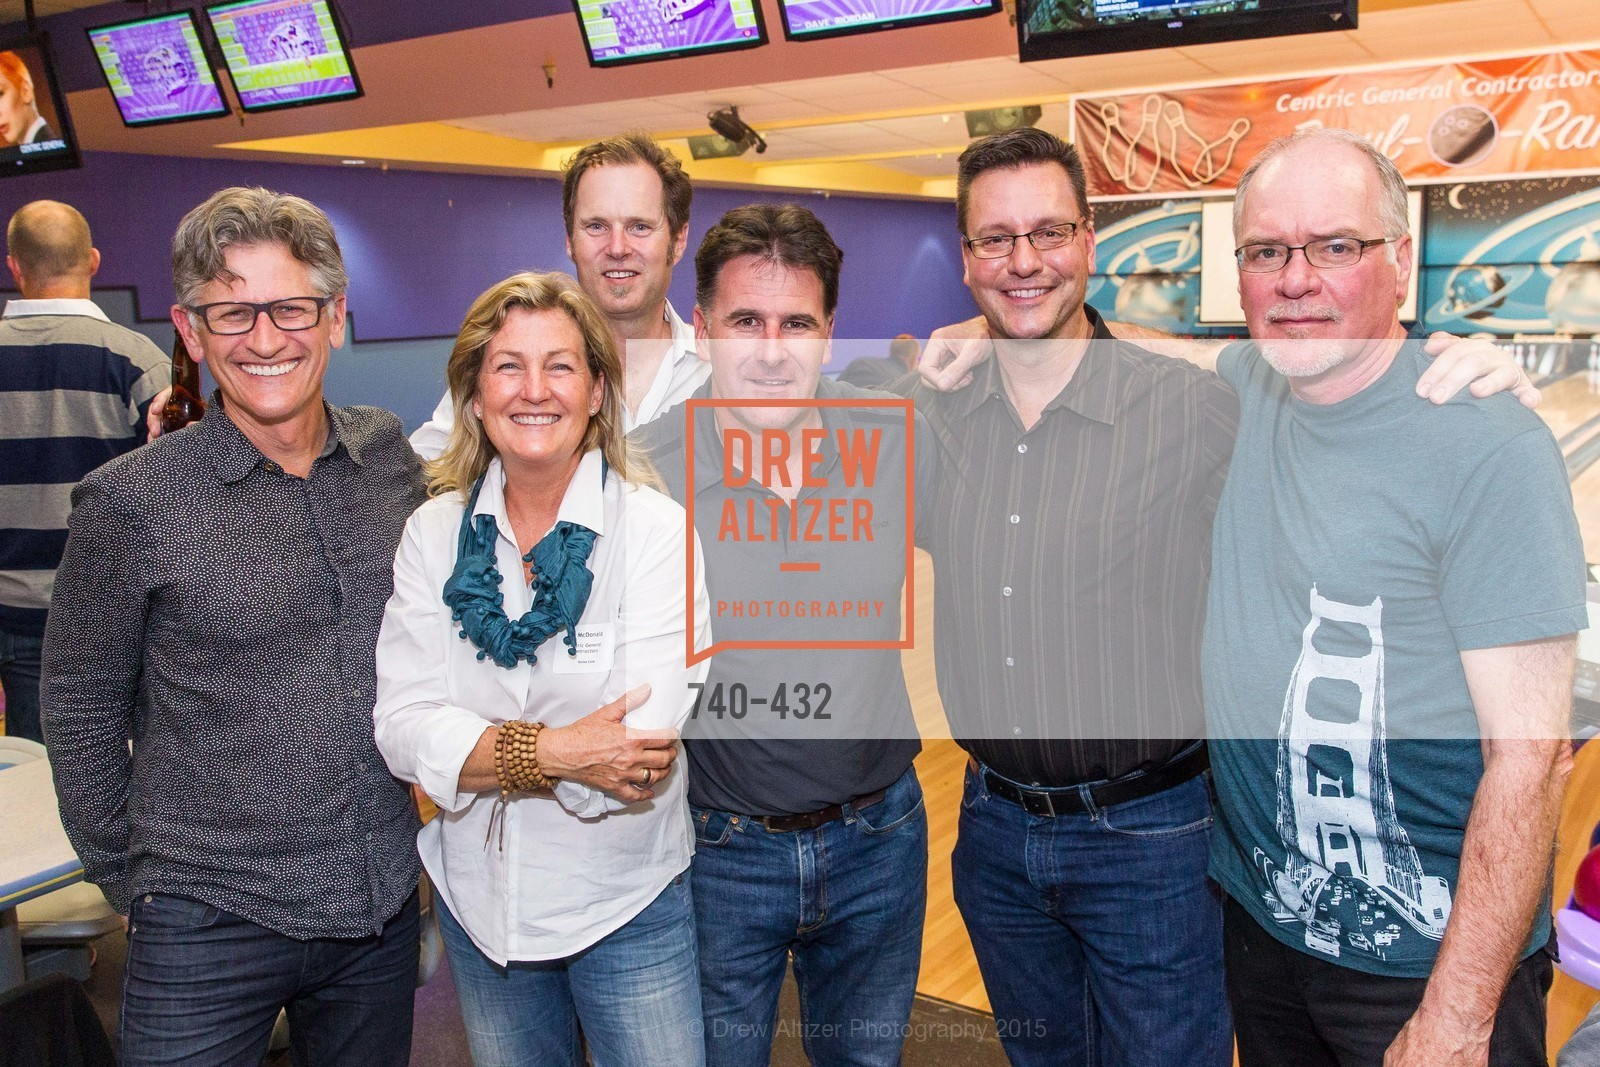 Mark English, Flin McDonald, Eric Blasen, Larry Steele, Terry Bryant, ScavulloDesign Centric Builders Bowling Party, Presidio Bowl. 93 Moraga Ave, October 29th, 2015,Drew Altizer, Drew Altizer Photography, full-service agency, private events, San Francisco photographer, photographer california